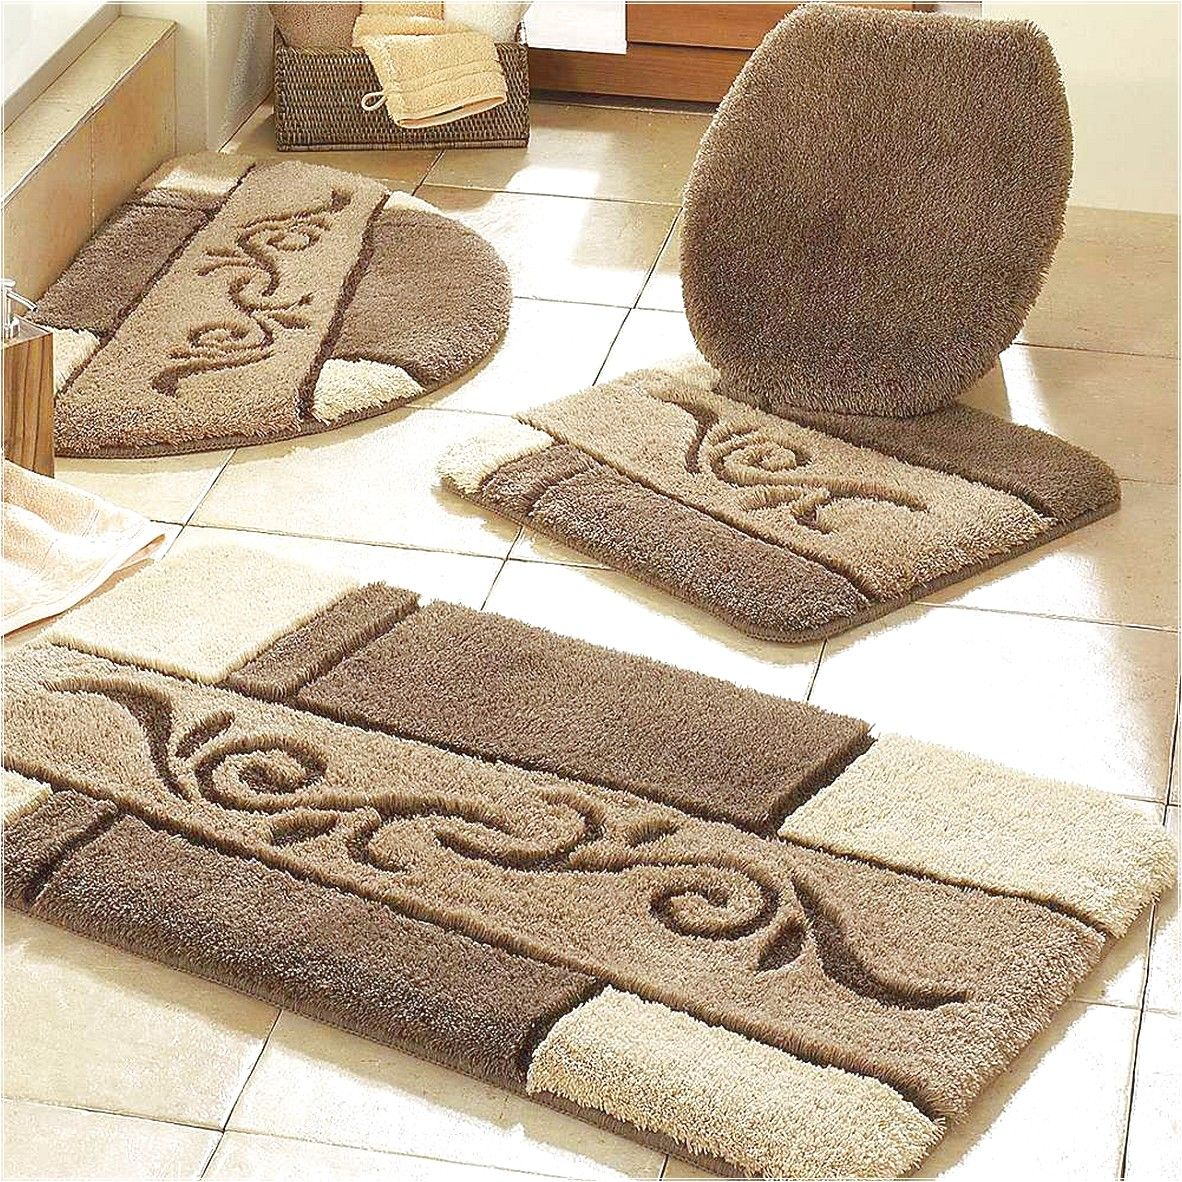 How to choose bathroom rug sets that will look perfect for